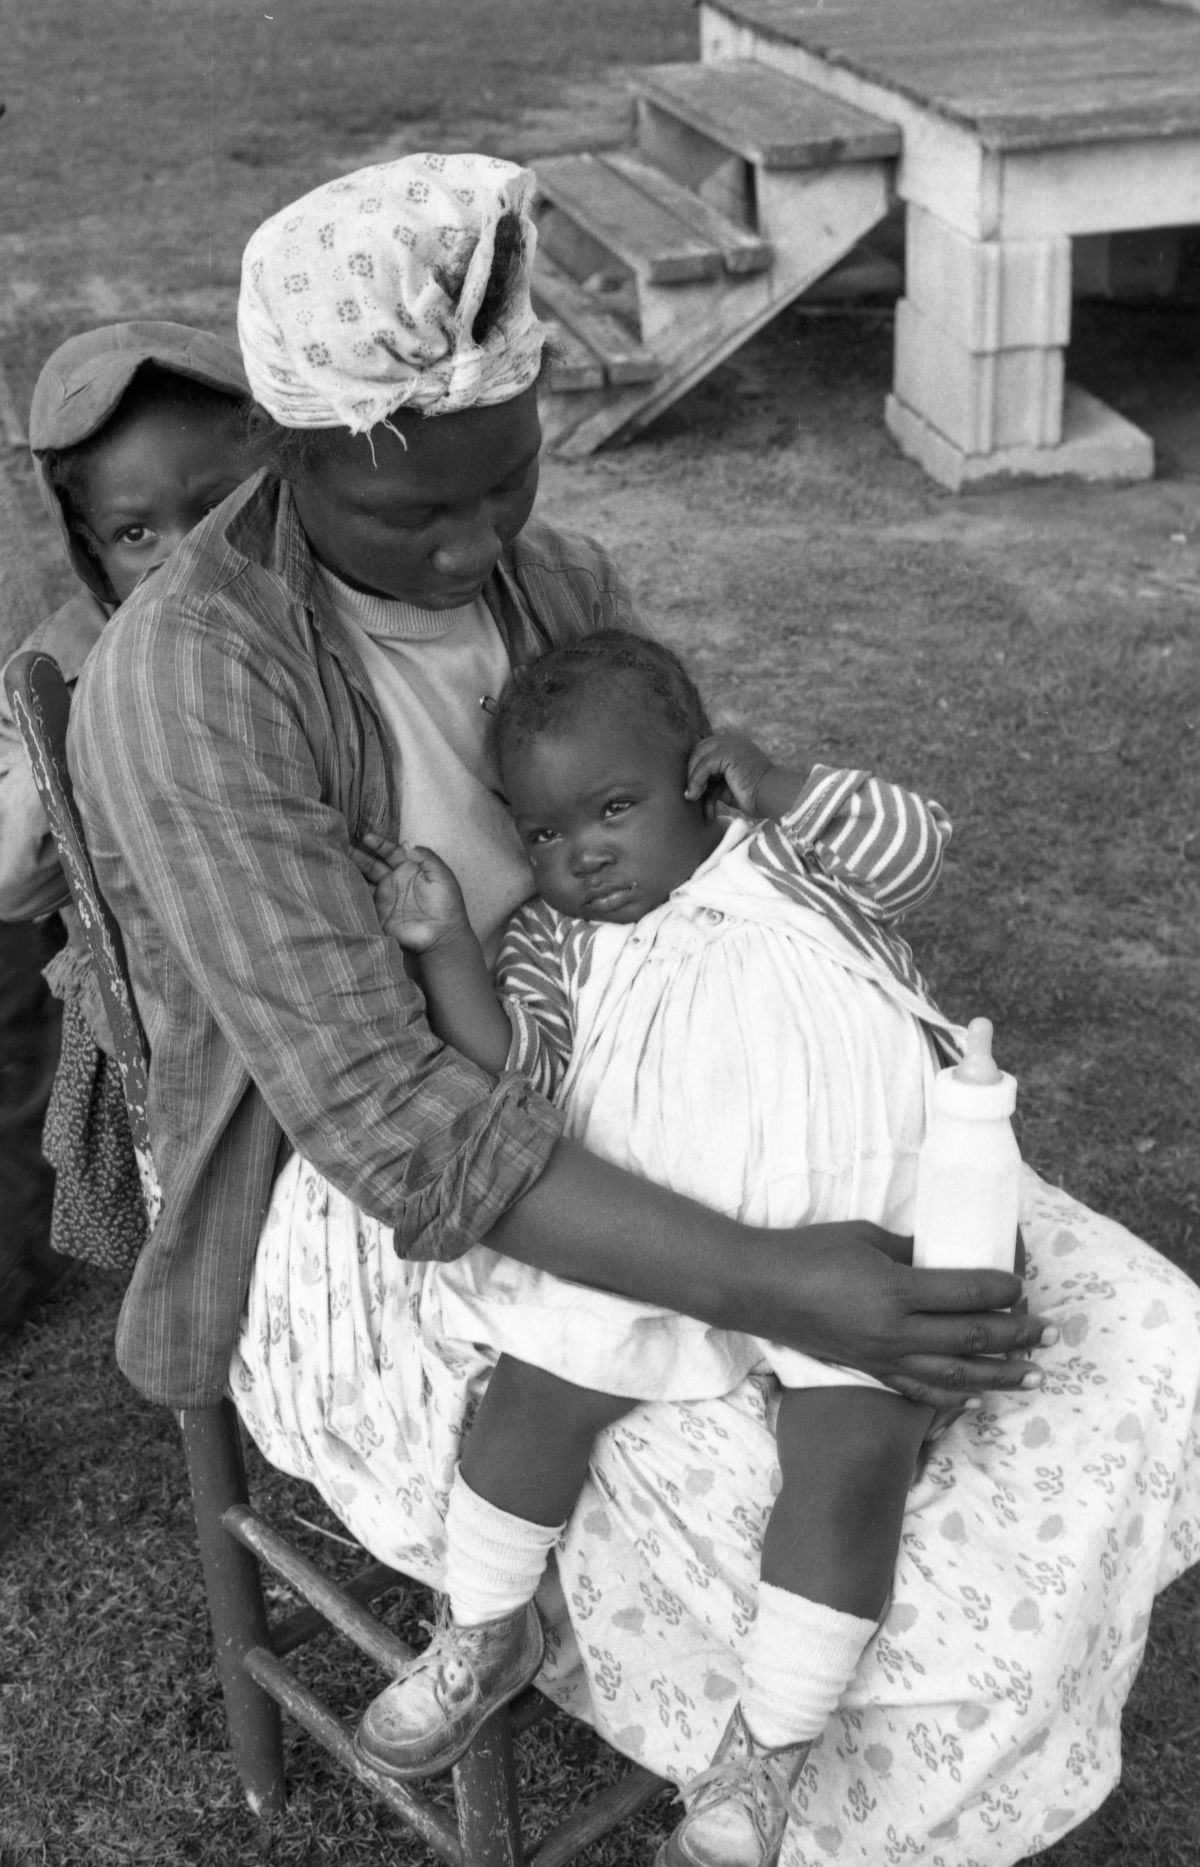 Gladys Ulee with baby Cordial and daughter Onita in the Thompson Valley community of Jefferson County.